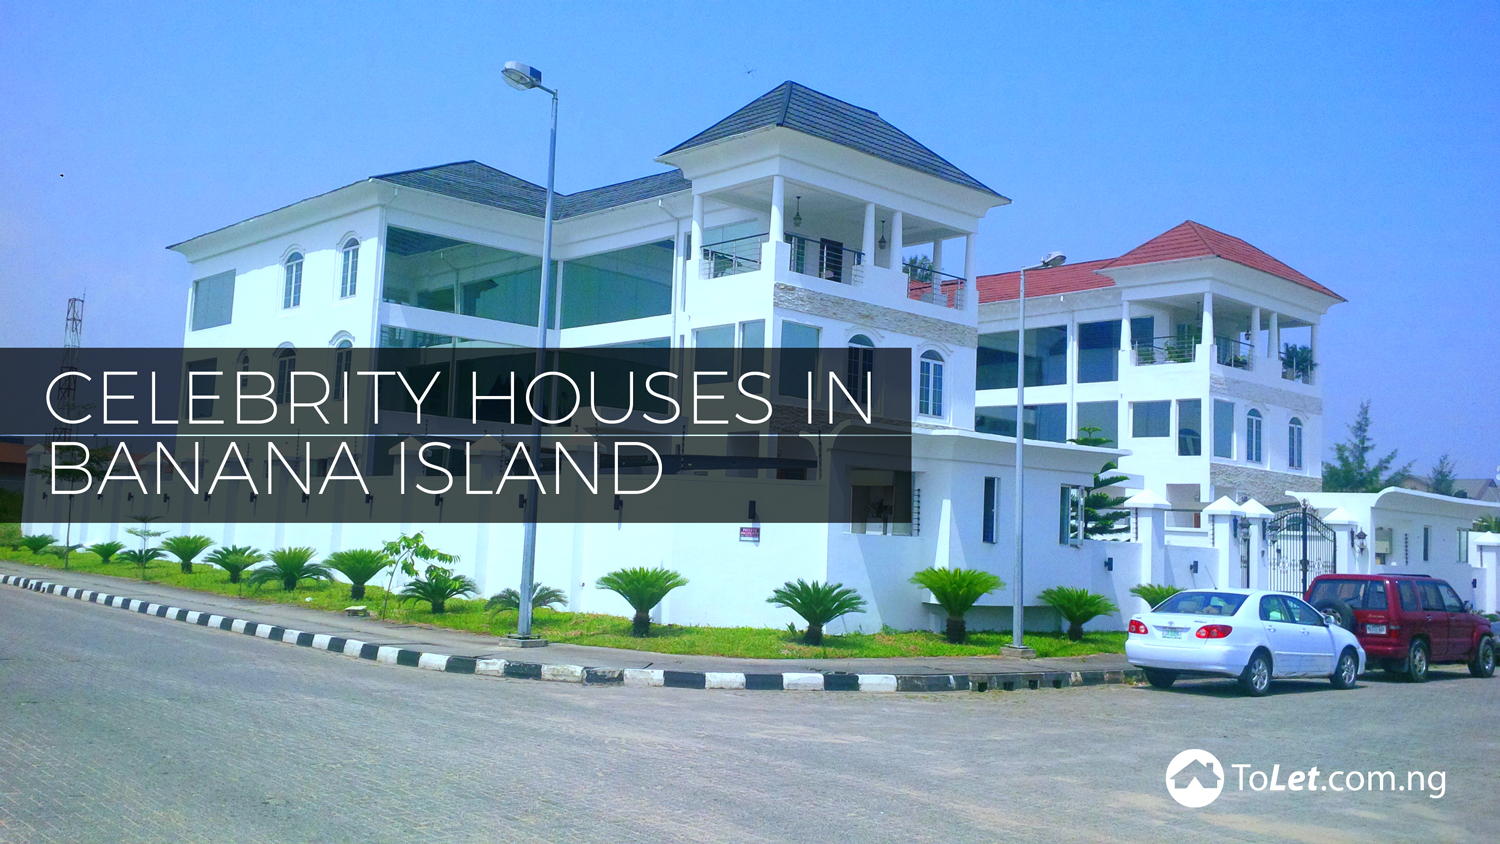 Celebrity Houses in Banana Island - PropertyPro Insider